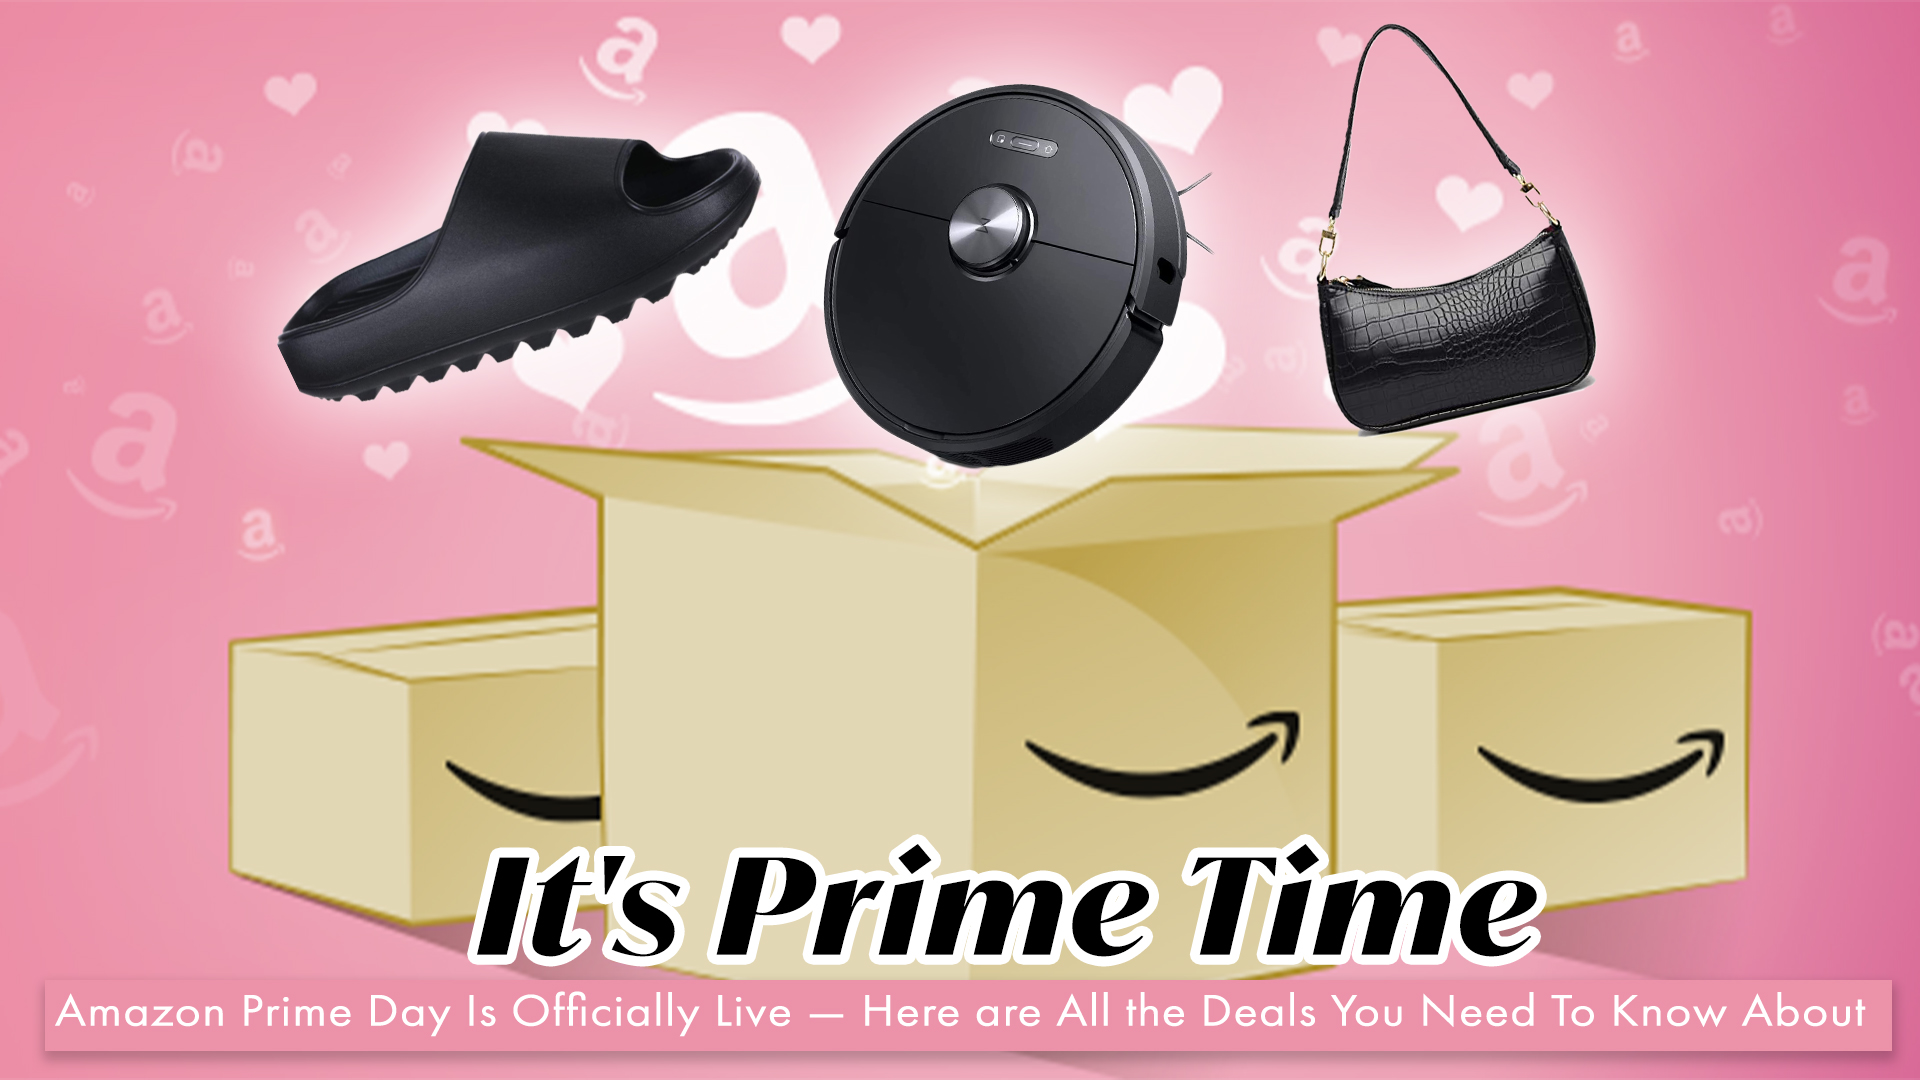 Amazon Prime Day Is Over Tonight — Here's Everything You Need To Know To Score Today